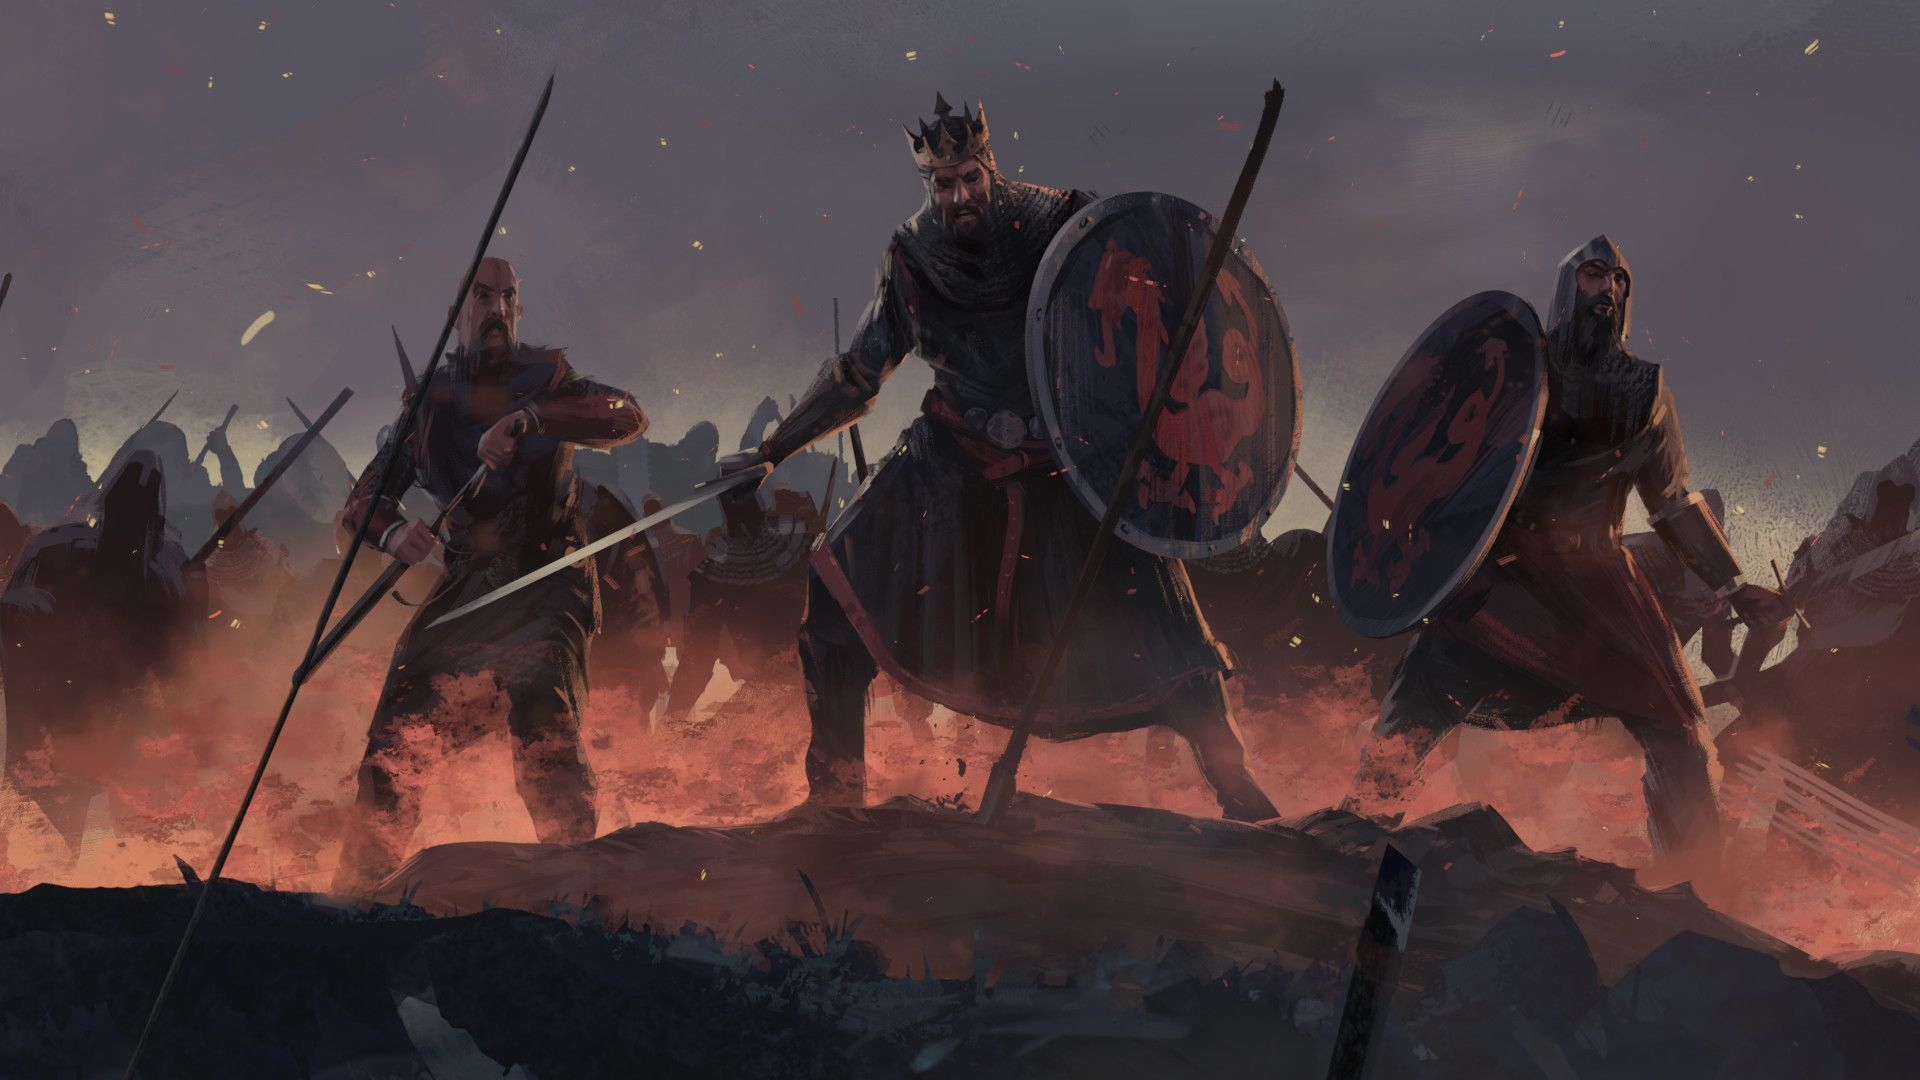 tráiler cinematográfico de Total War Saga: Thrones of Britannia